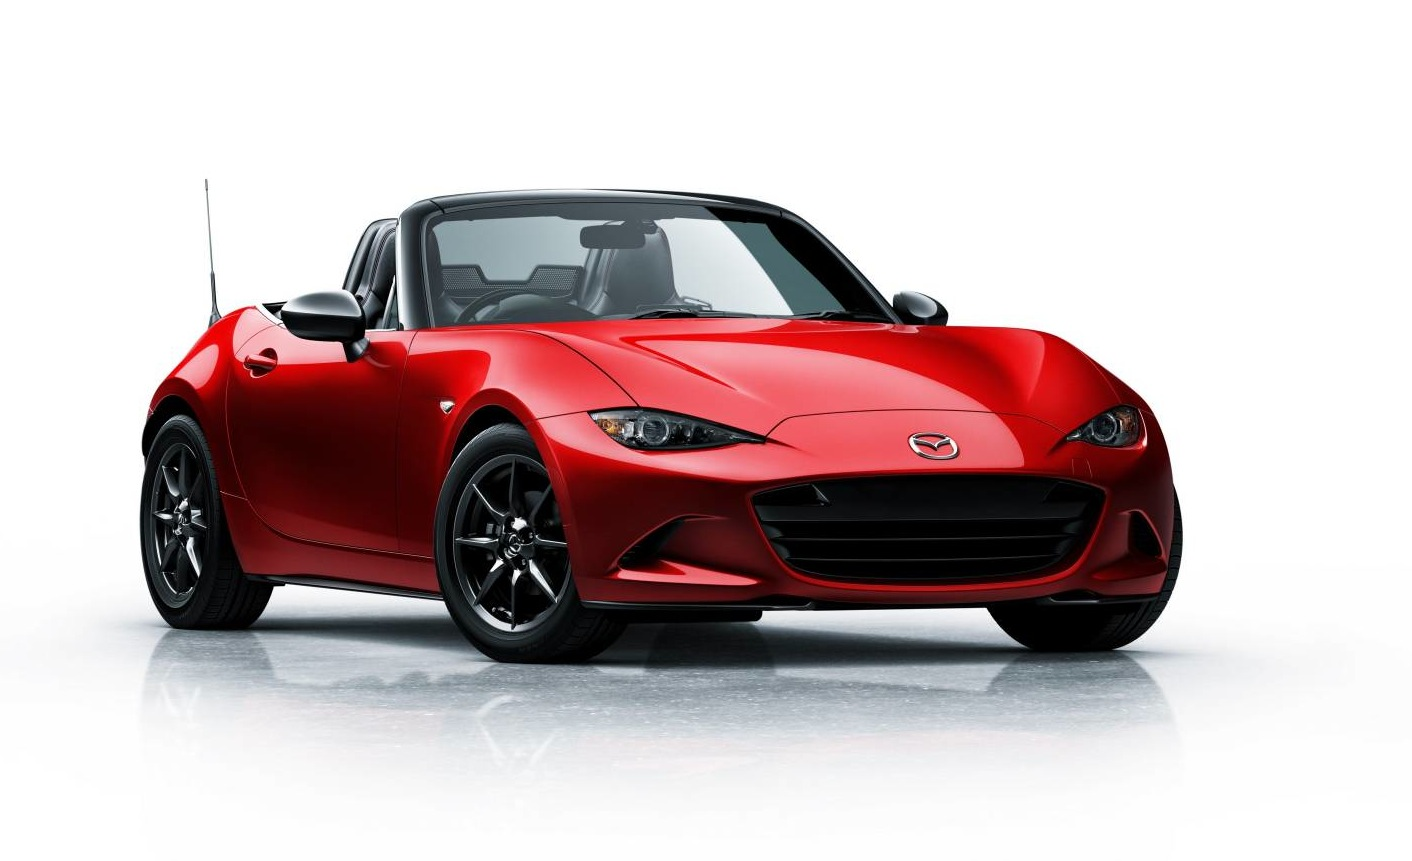 This is it, the all-new 2015 Mazda MX-5. It made its international